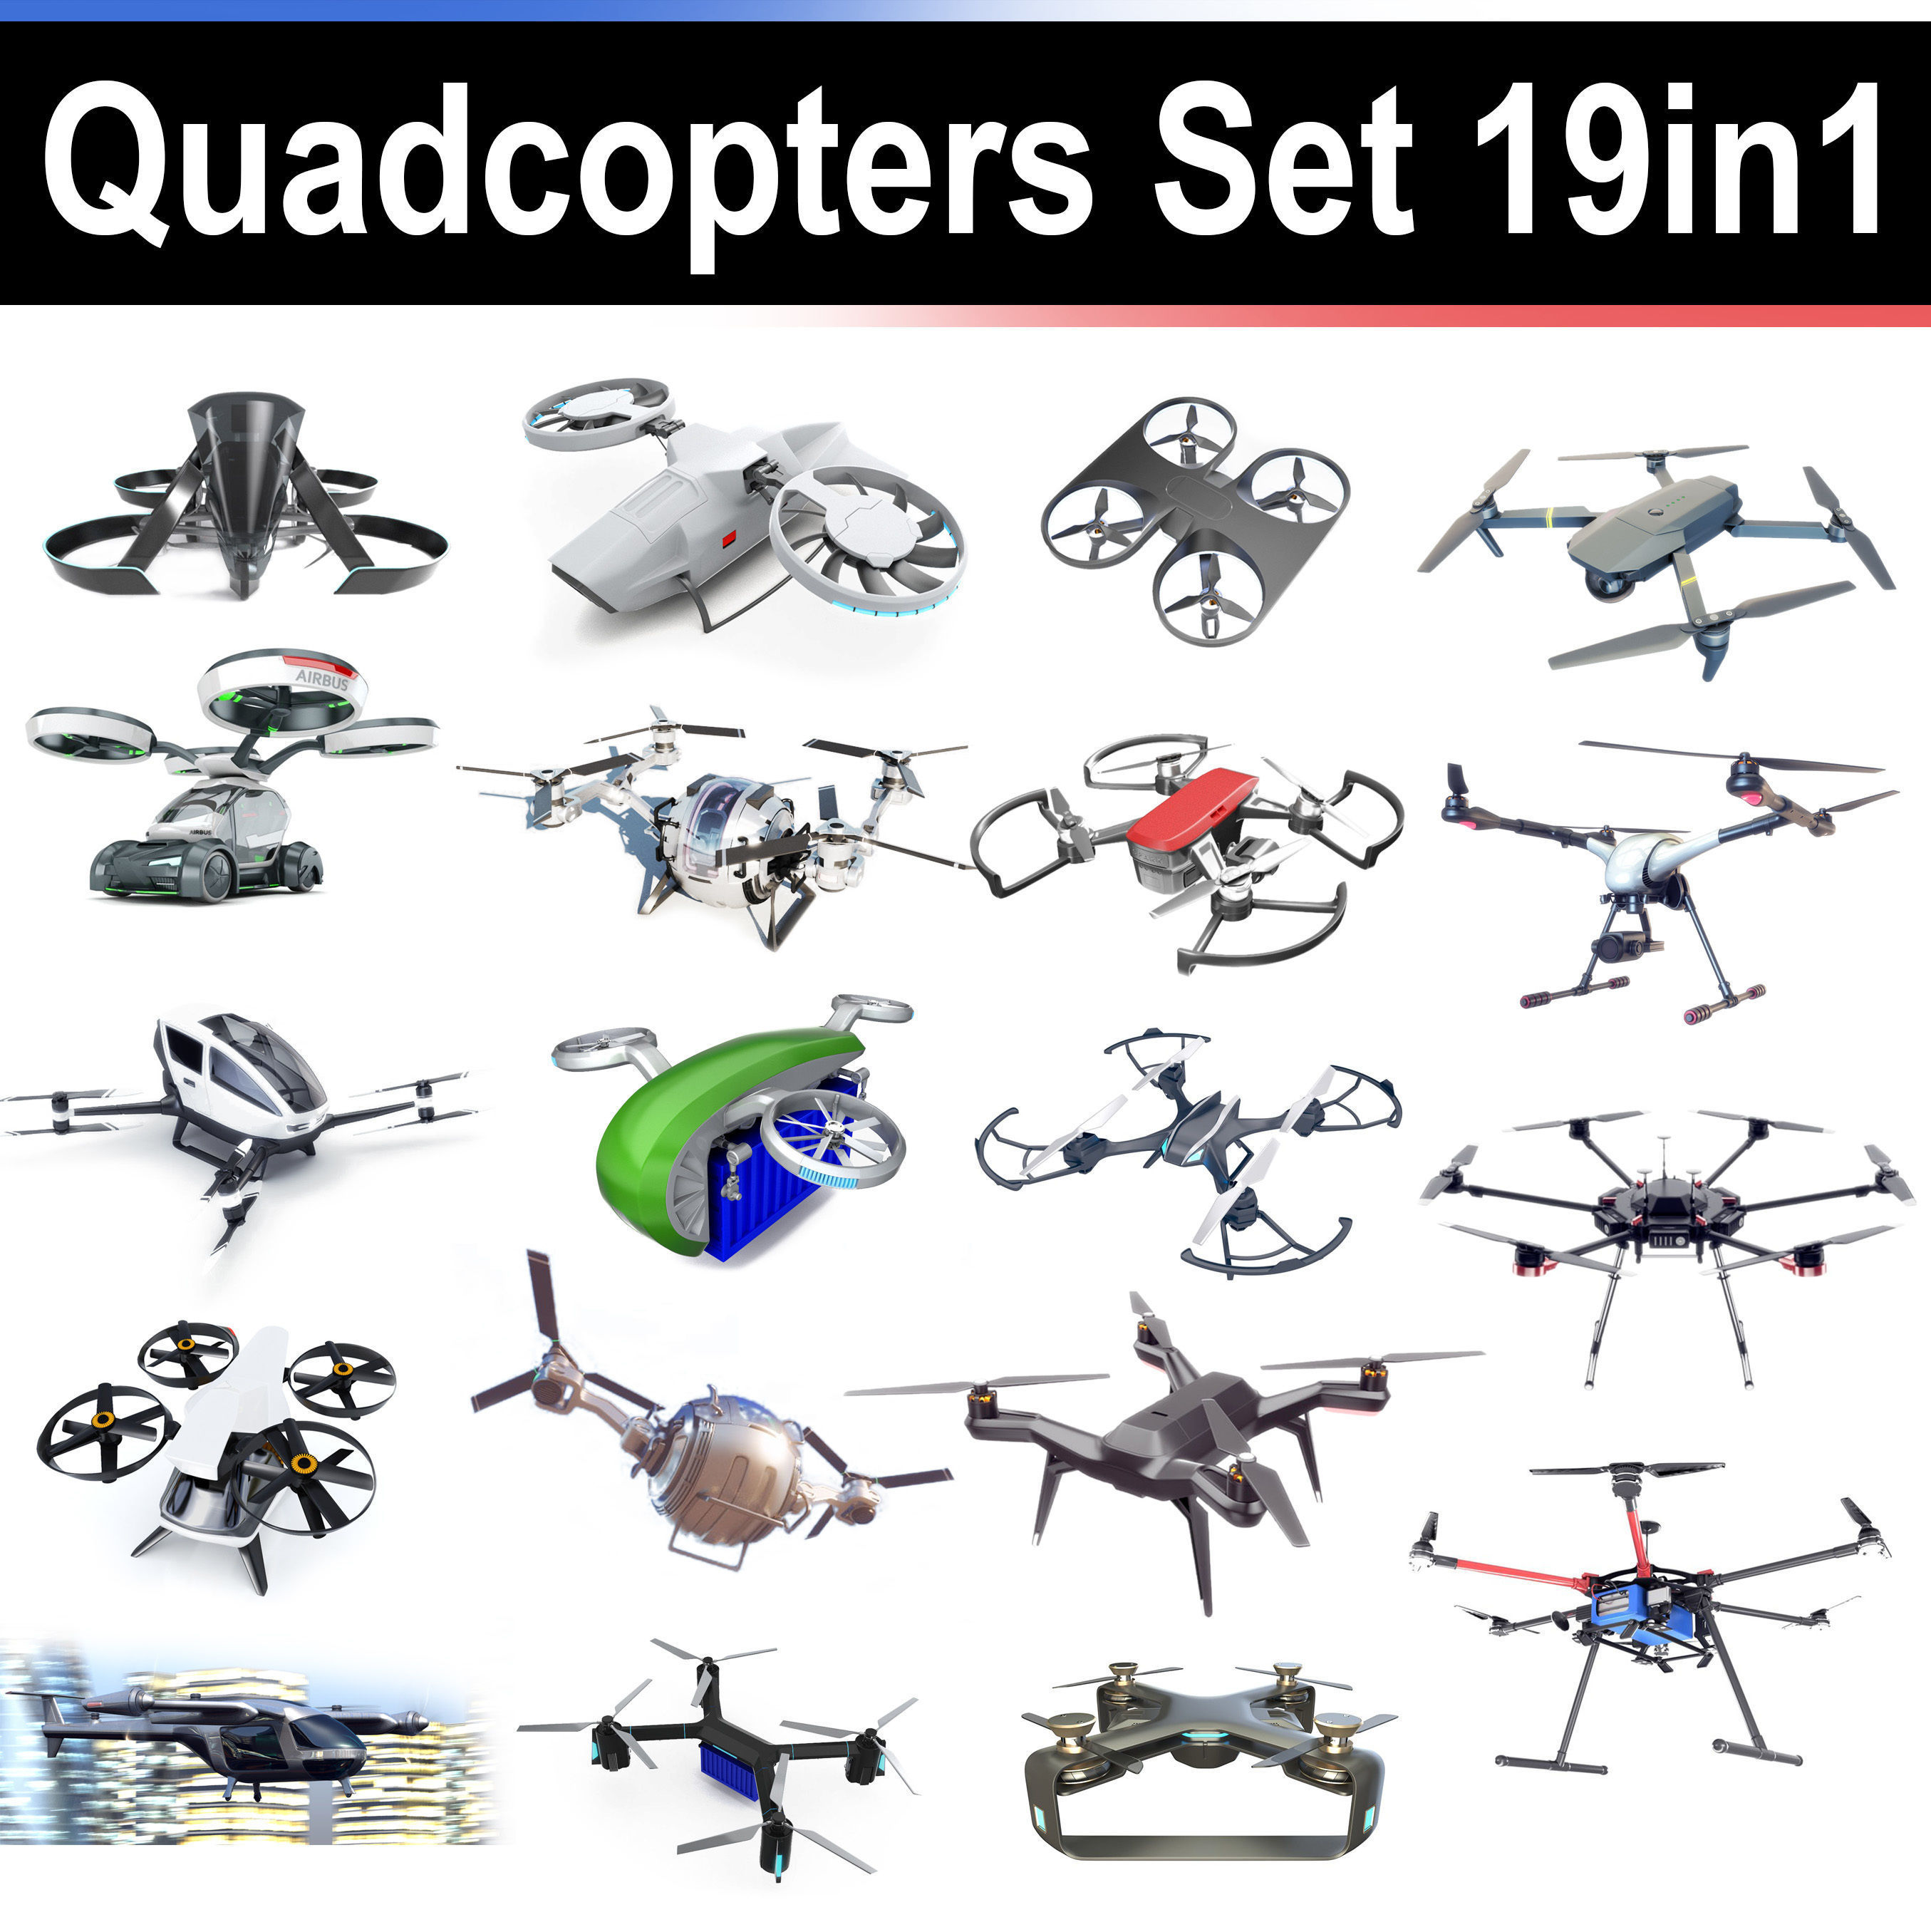 Quadcopters Set 19in1